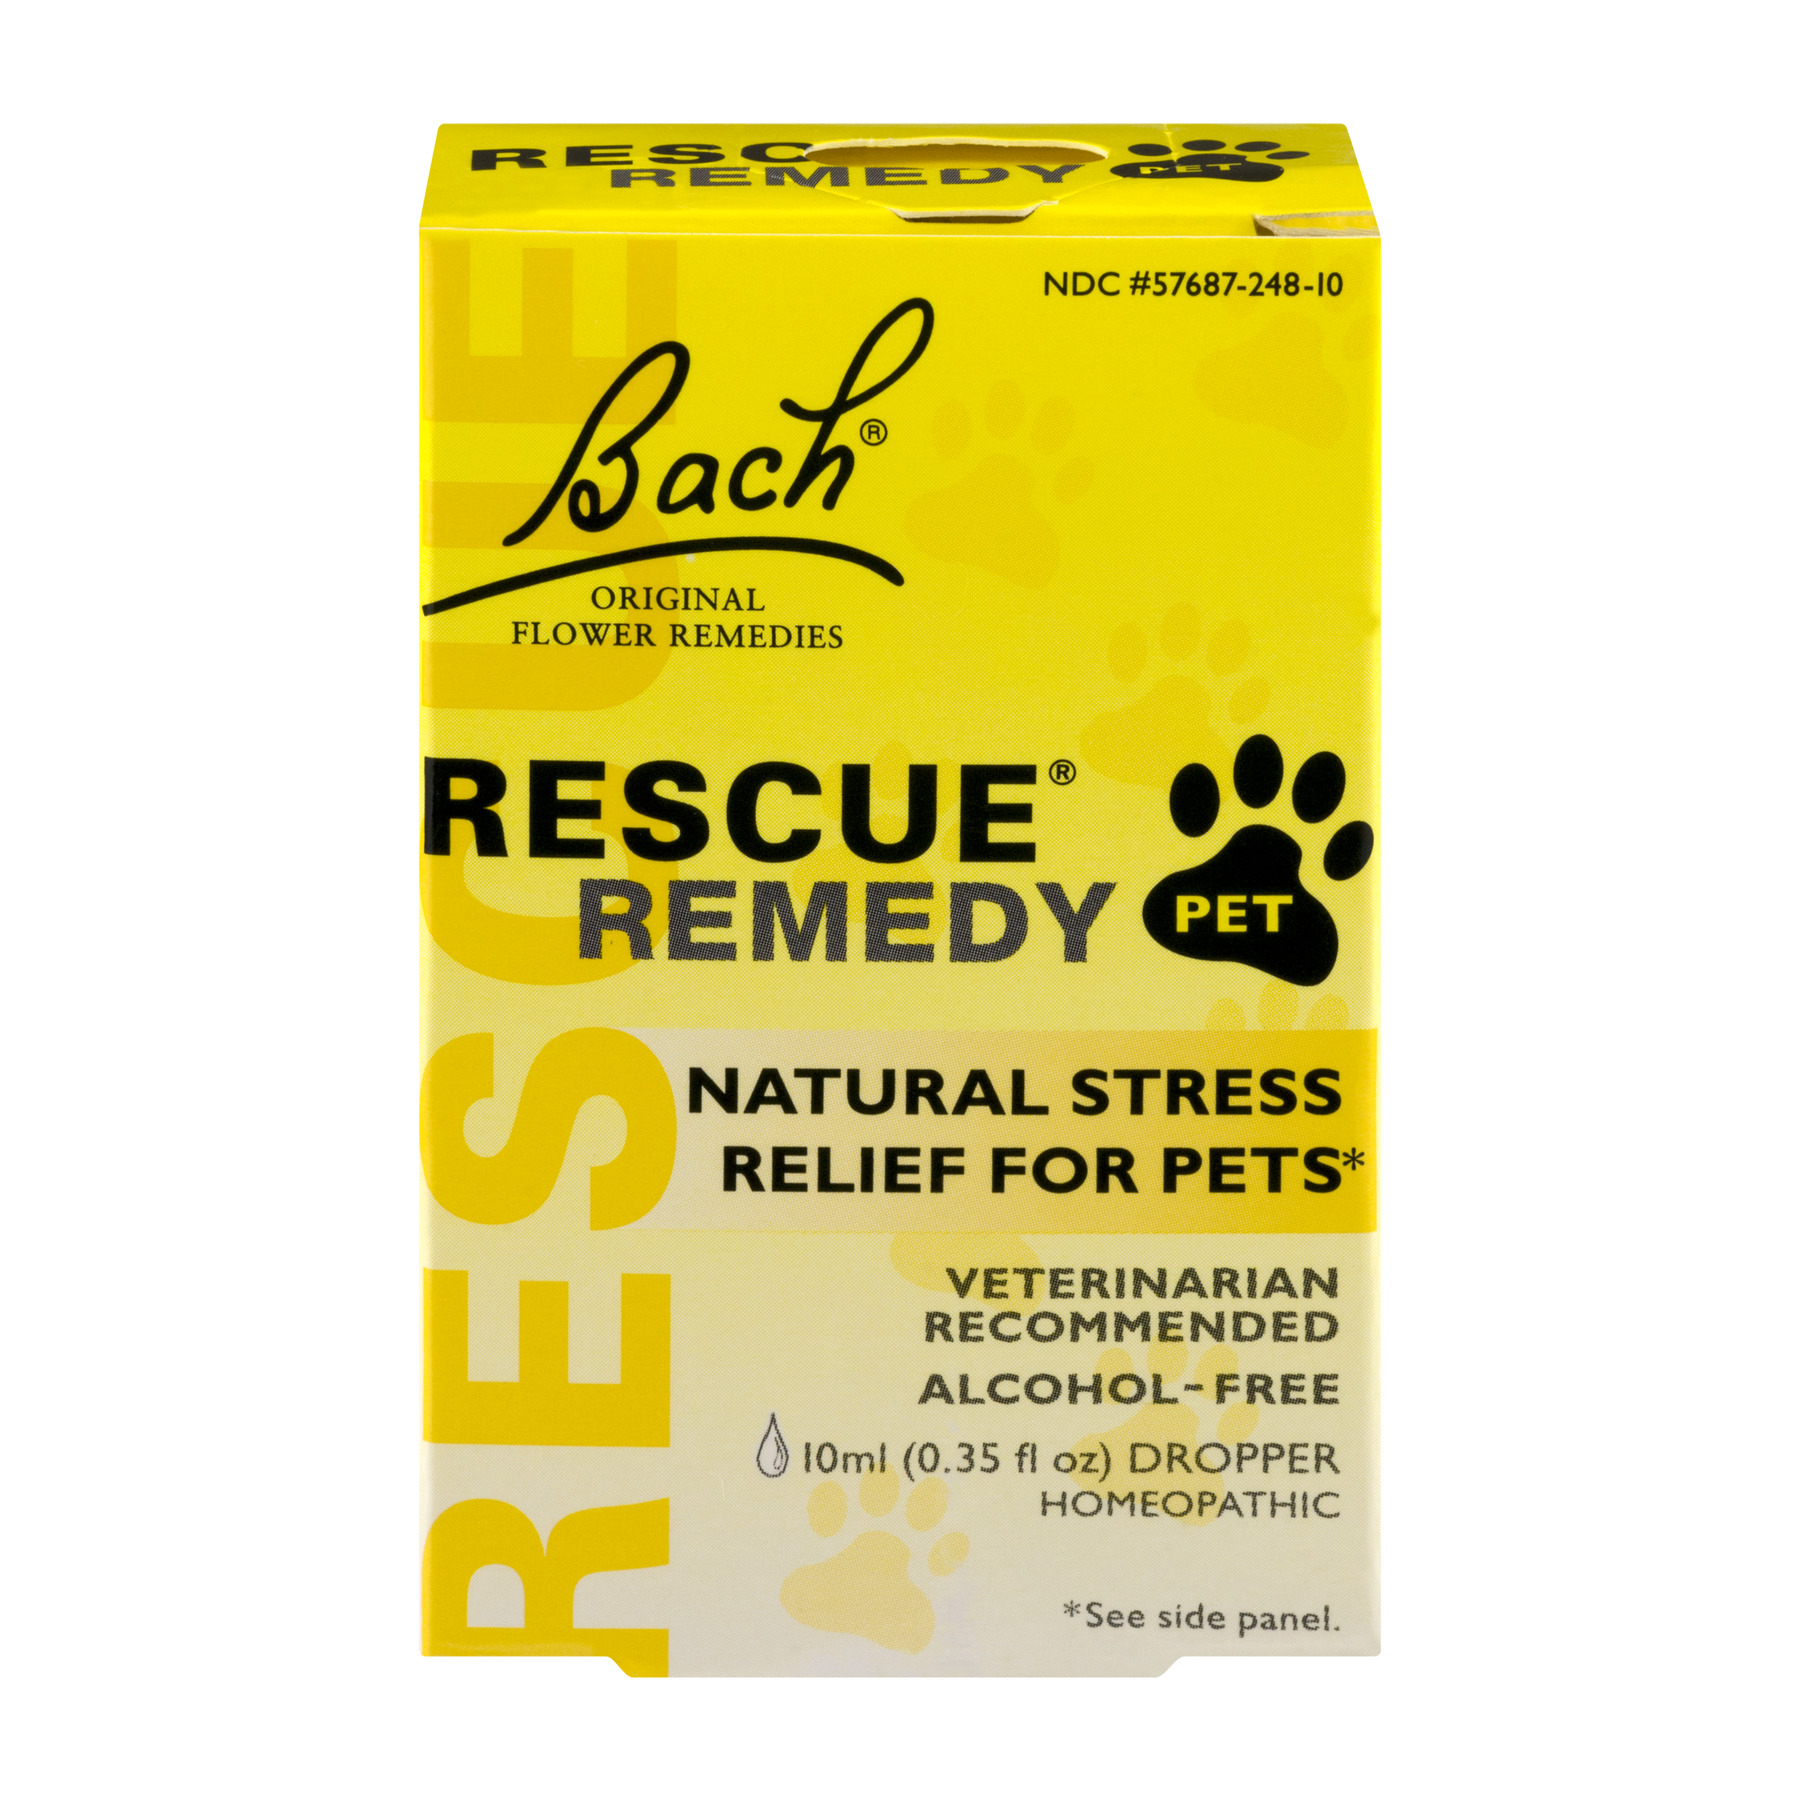 Rescue Remedy Pet Bach Natural Stress Relief for Pets, 10 mL